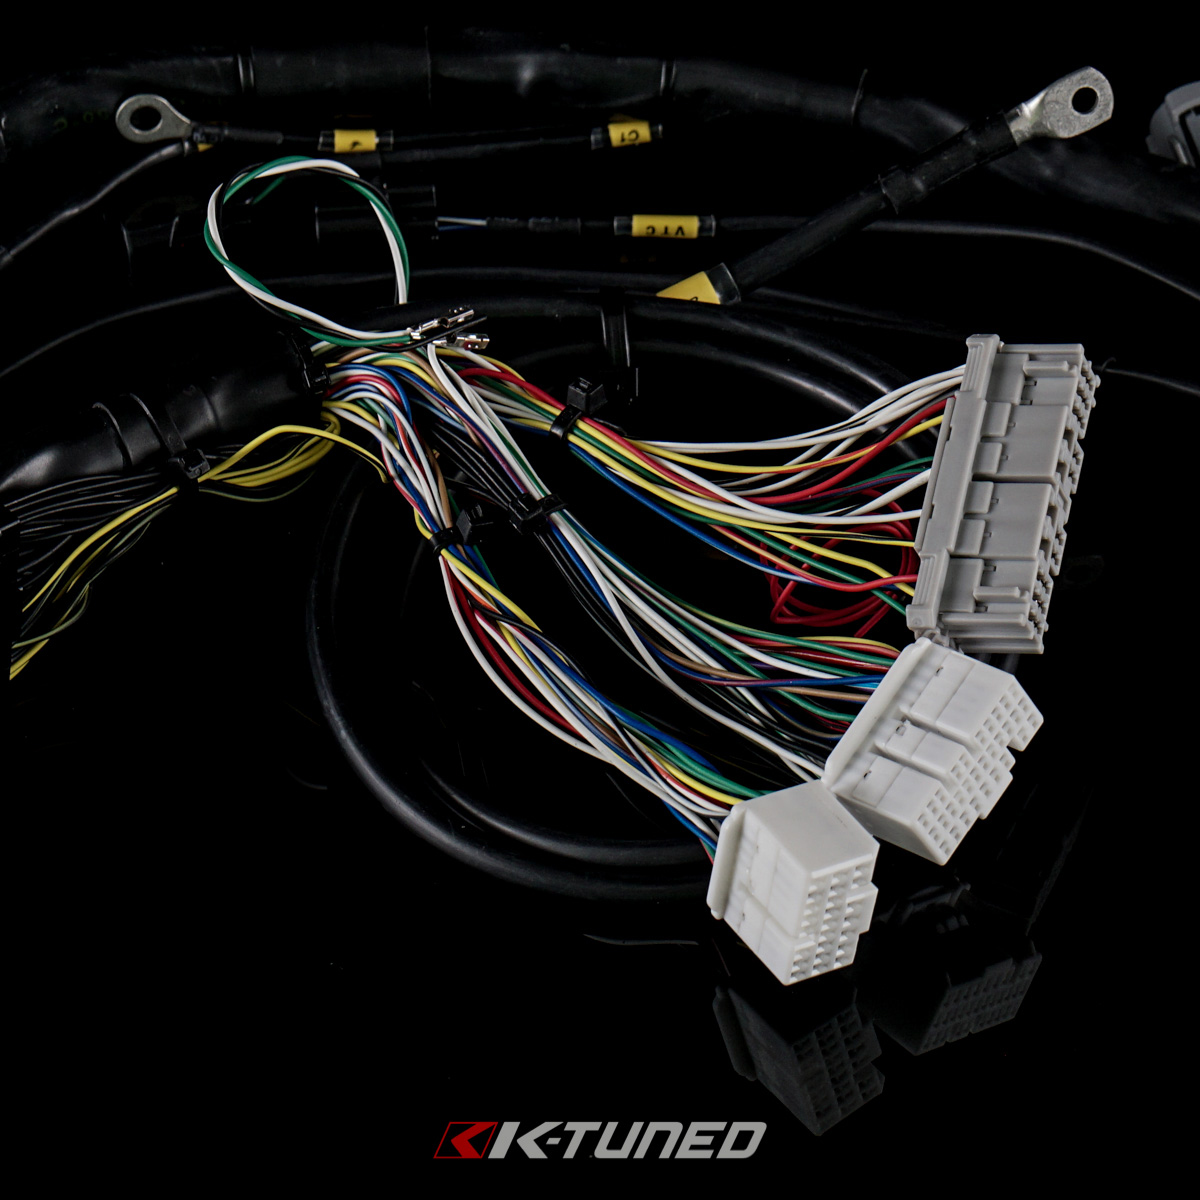 KTH 204 ENG_020 k series tucked engine harness rsx tucked wire harness at mifinder.co